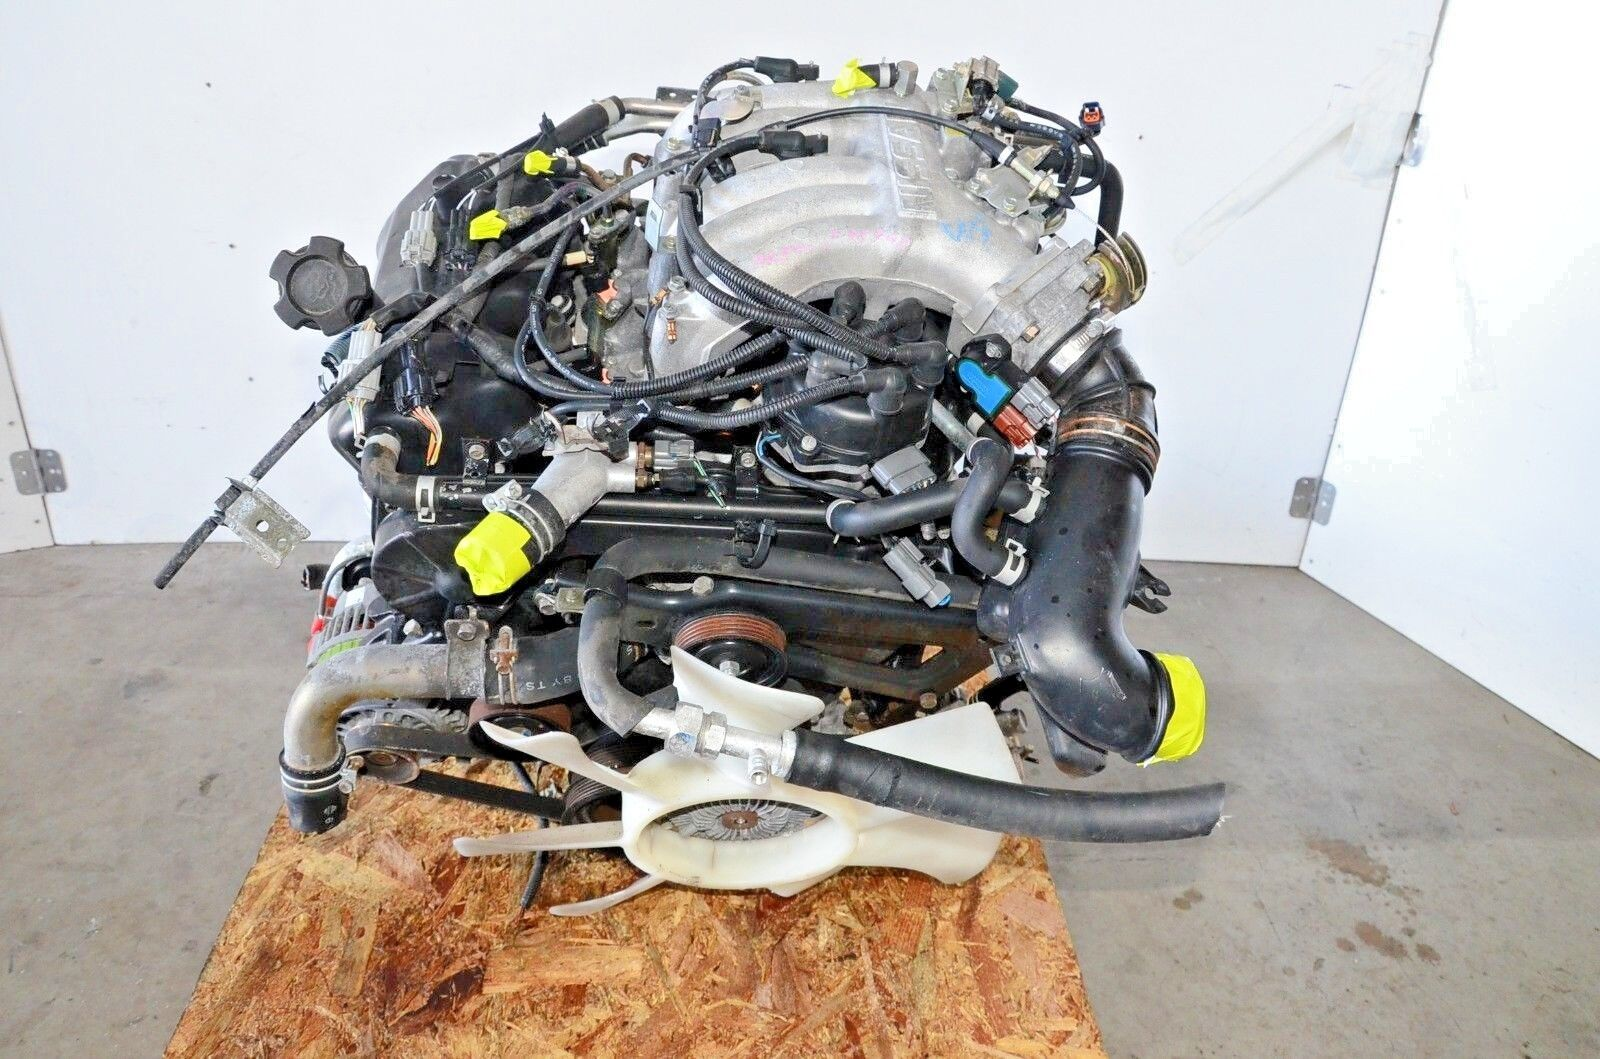 Used 2002 Nissan Frontier Complete Engines for Sale